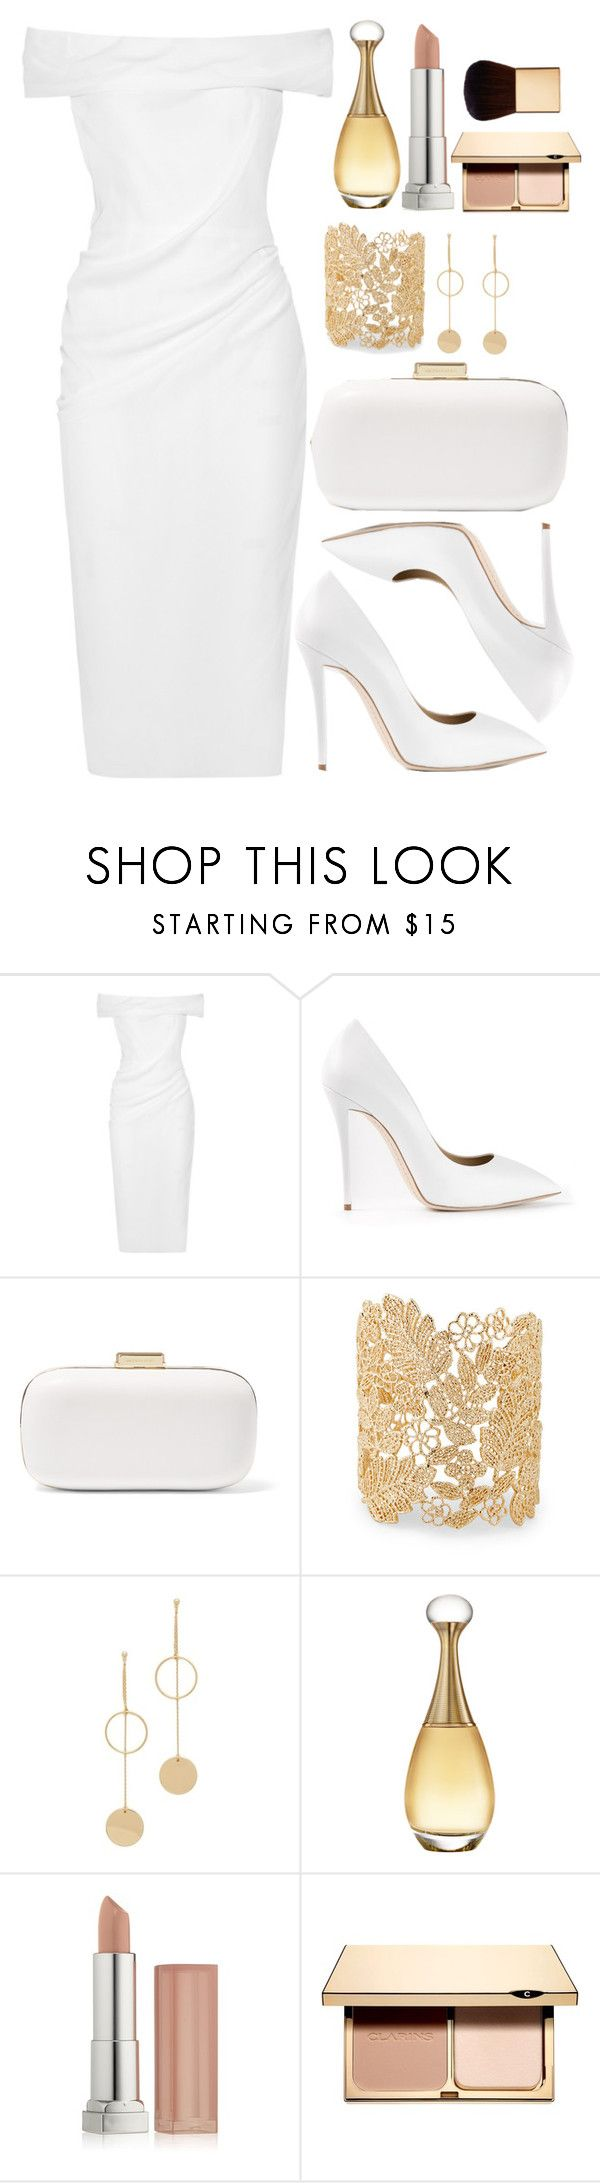 """Untitled #4402"" by natalyasidunova ❤ liked on Polyvore featuring Cushnie Et Ochs, Giuseppe Zanotti, MICHAEL Michael Kors, Sole Society, Cloverpost, Christian Dior, Maybelline, Clarins and AERIN"